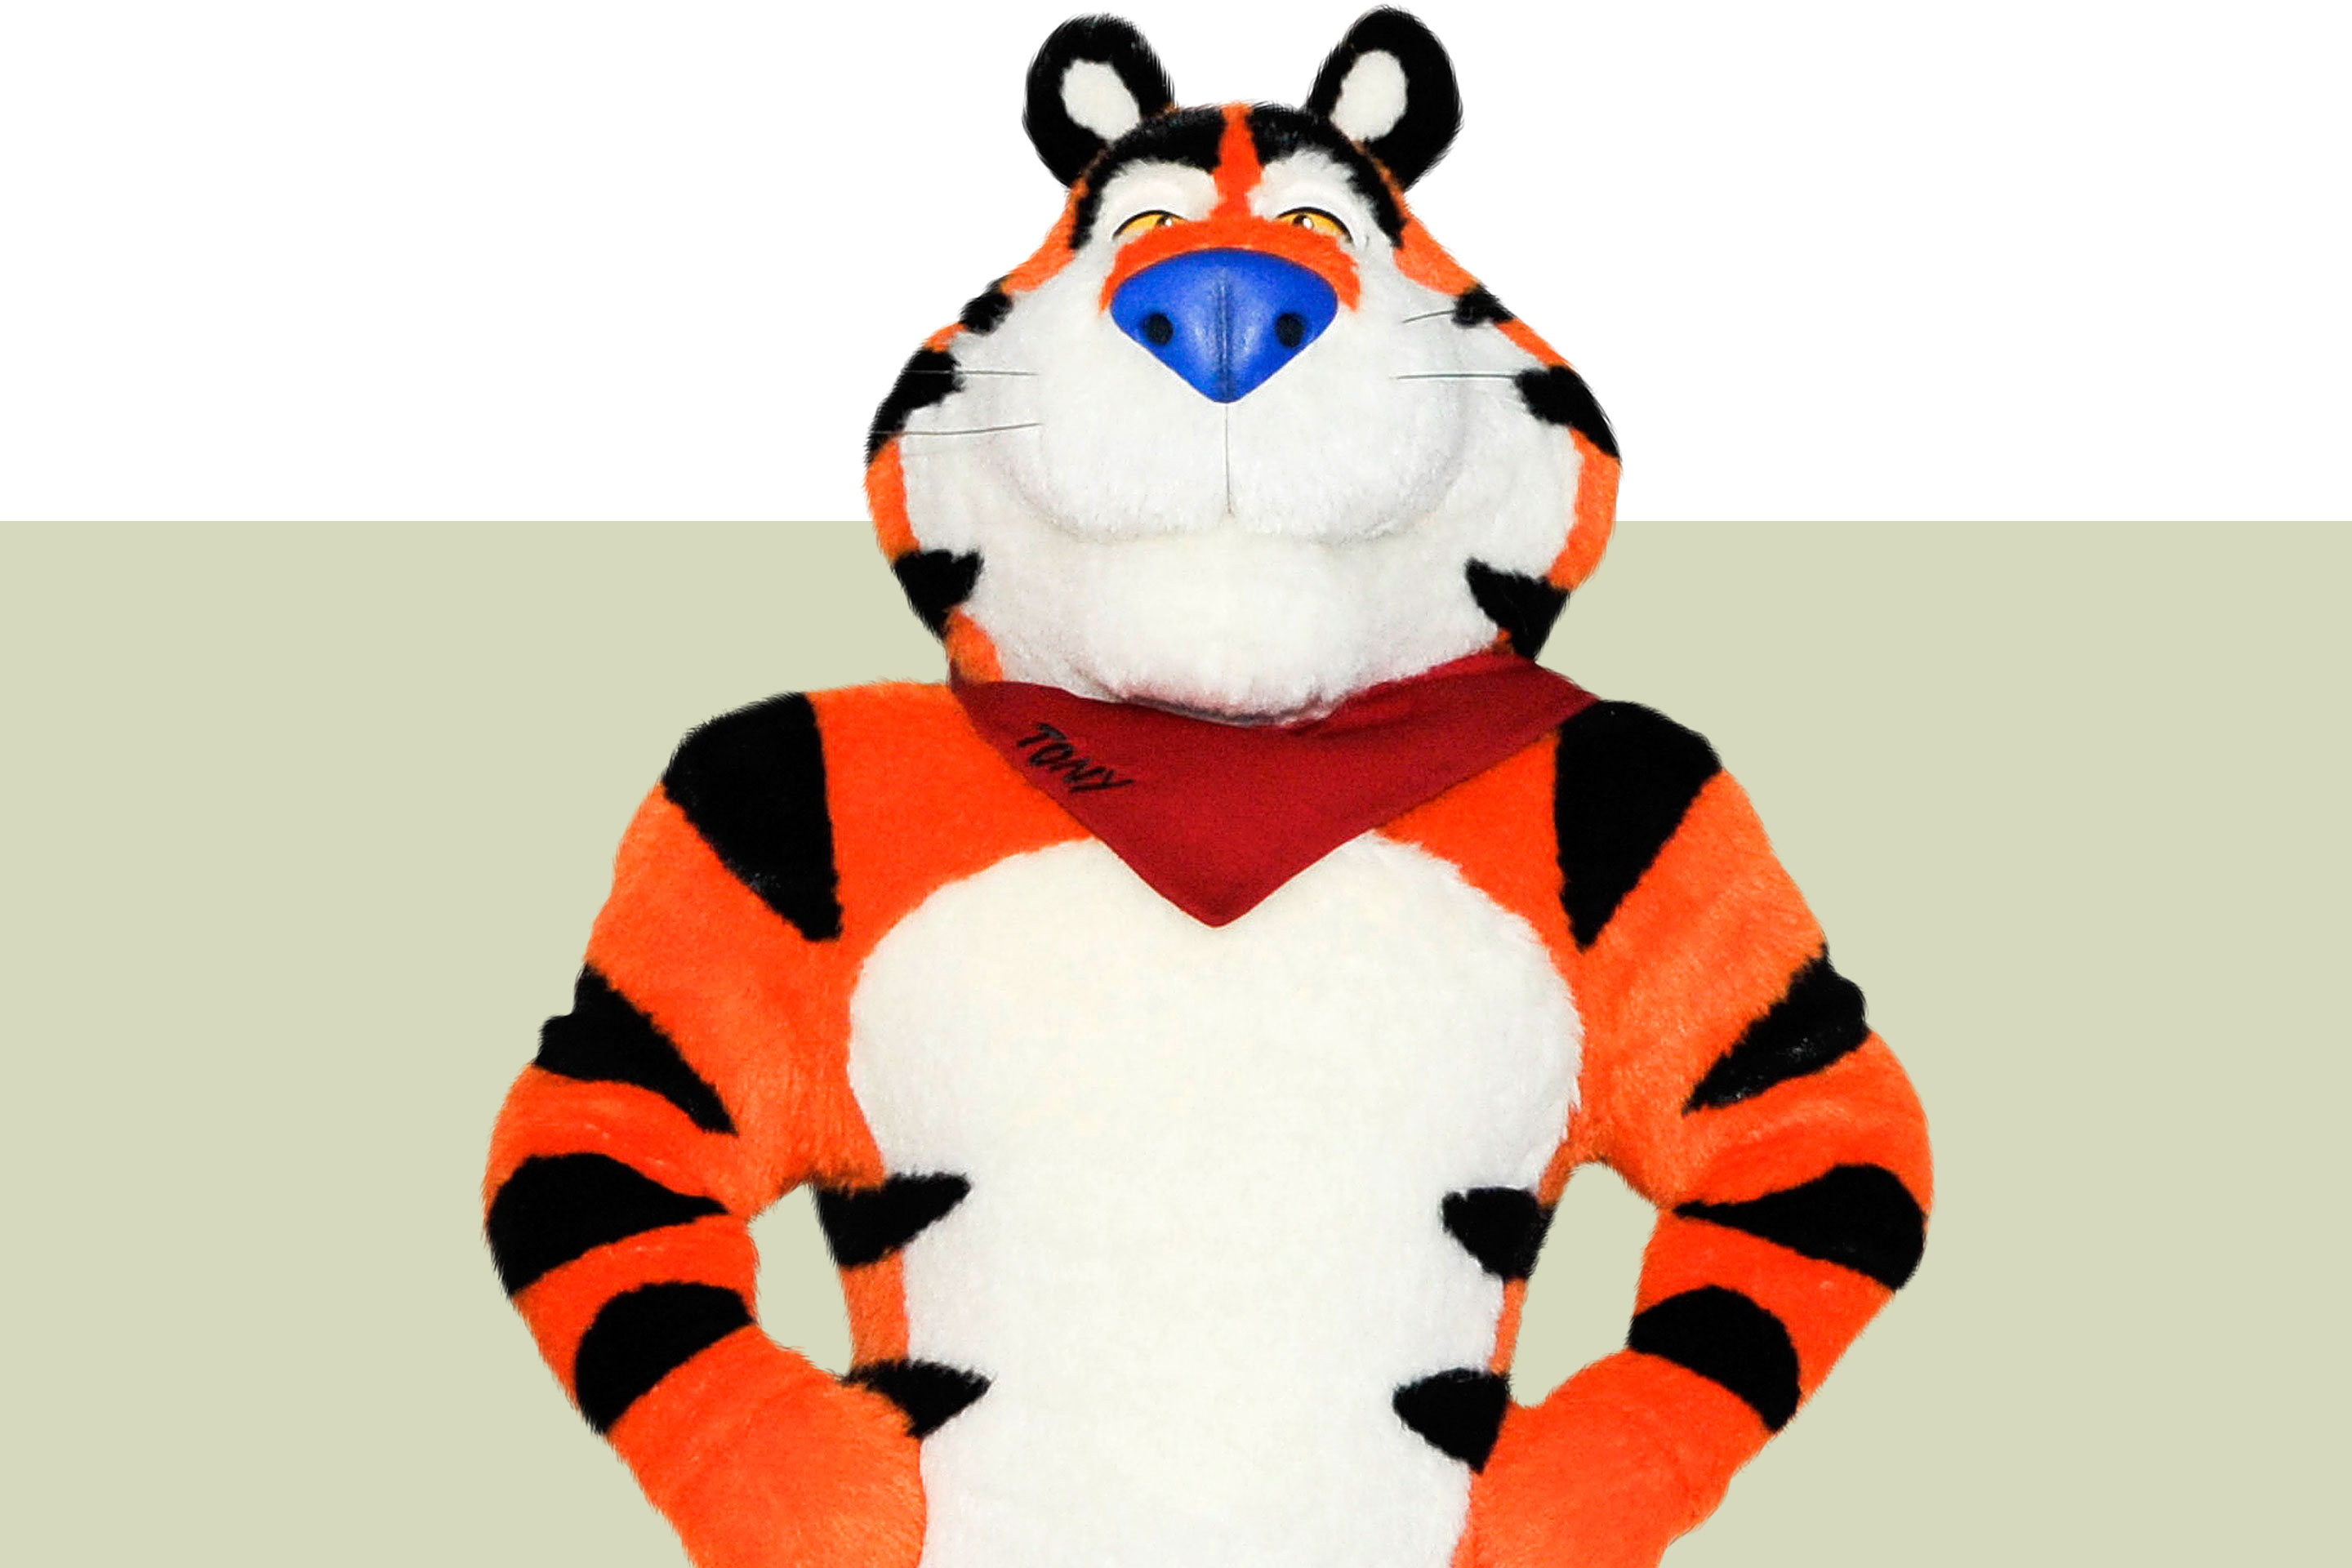 Tony The Tiger during a press conference debuting his new look on September 15, 2016 in New York City.